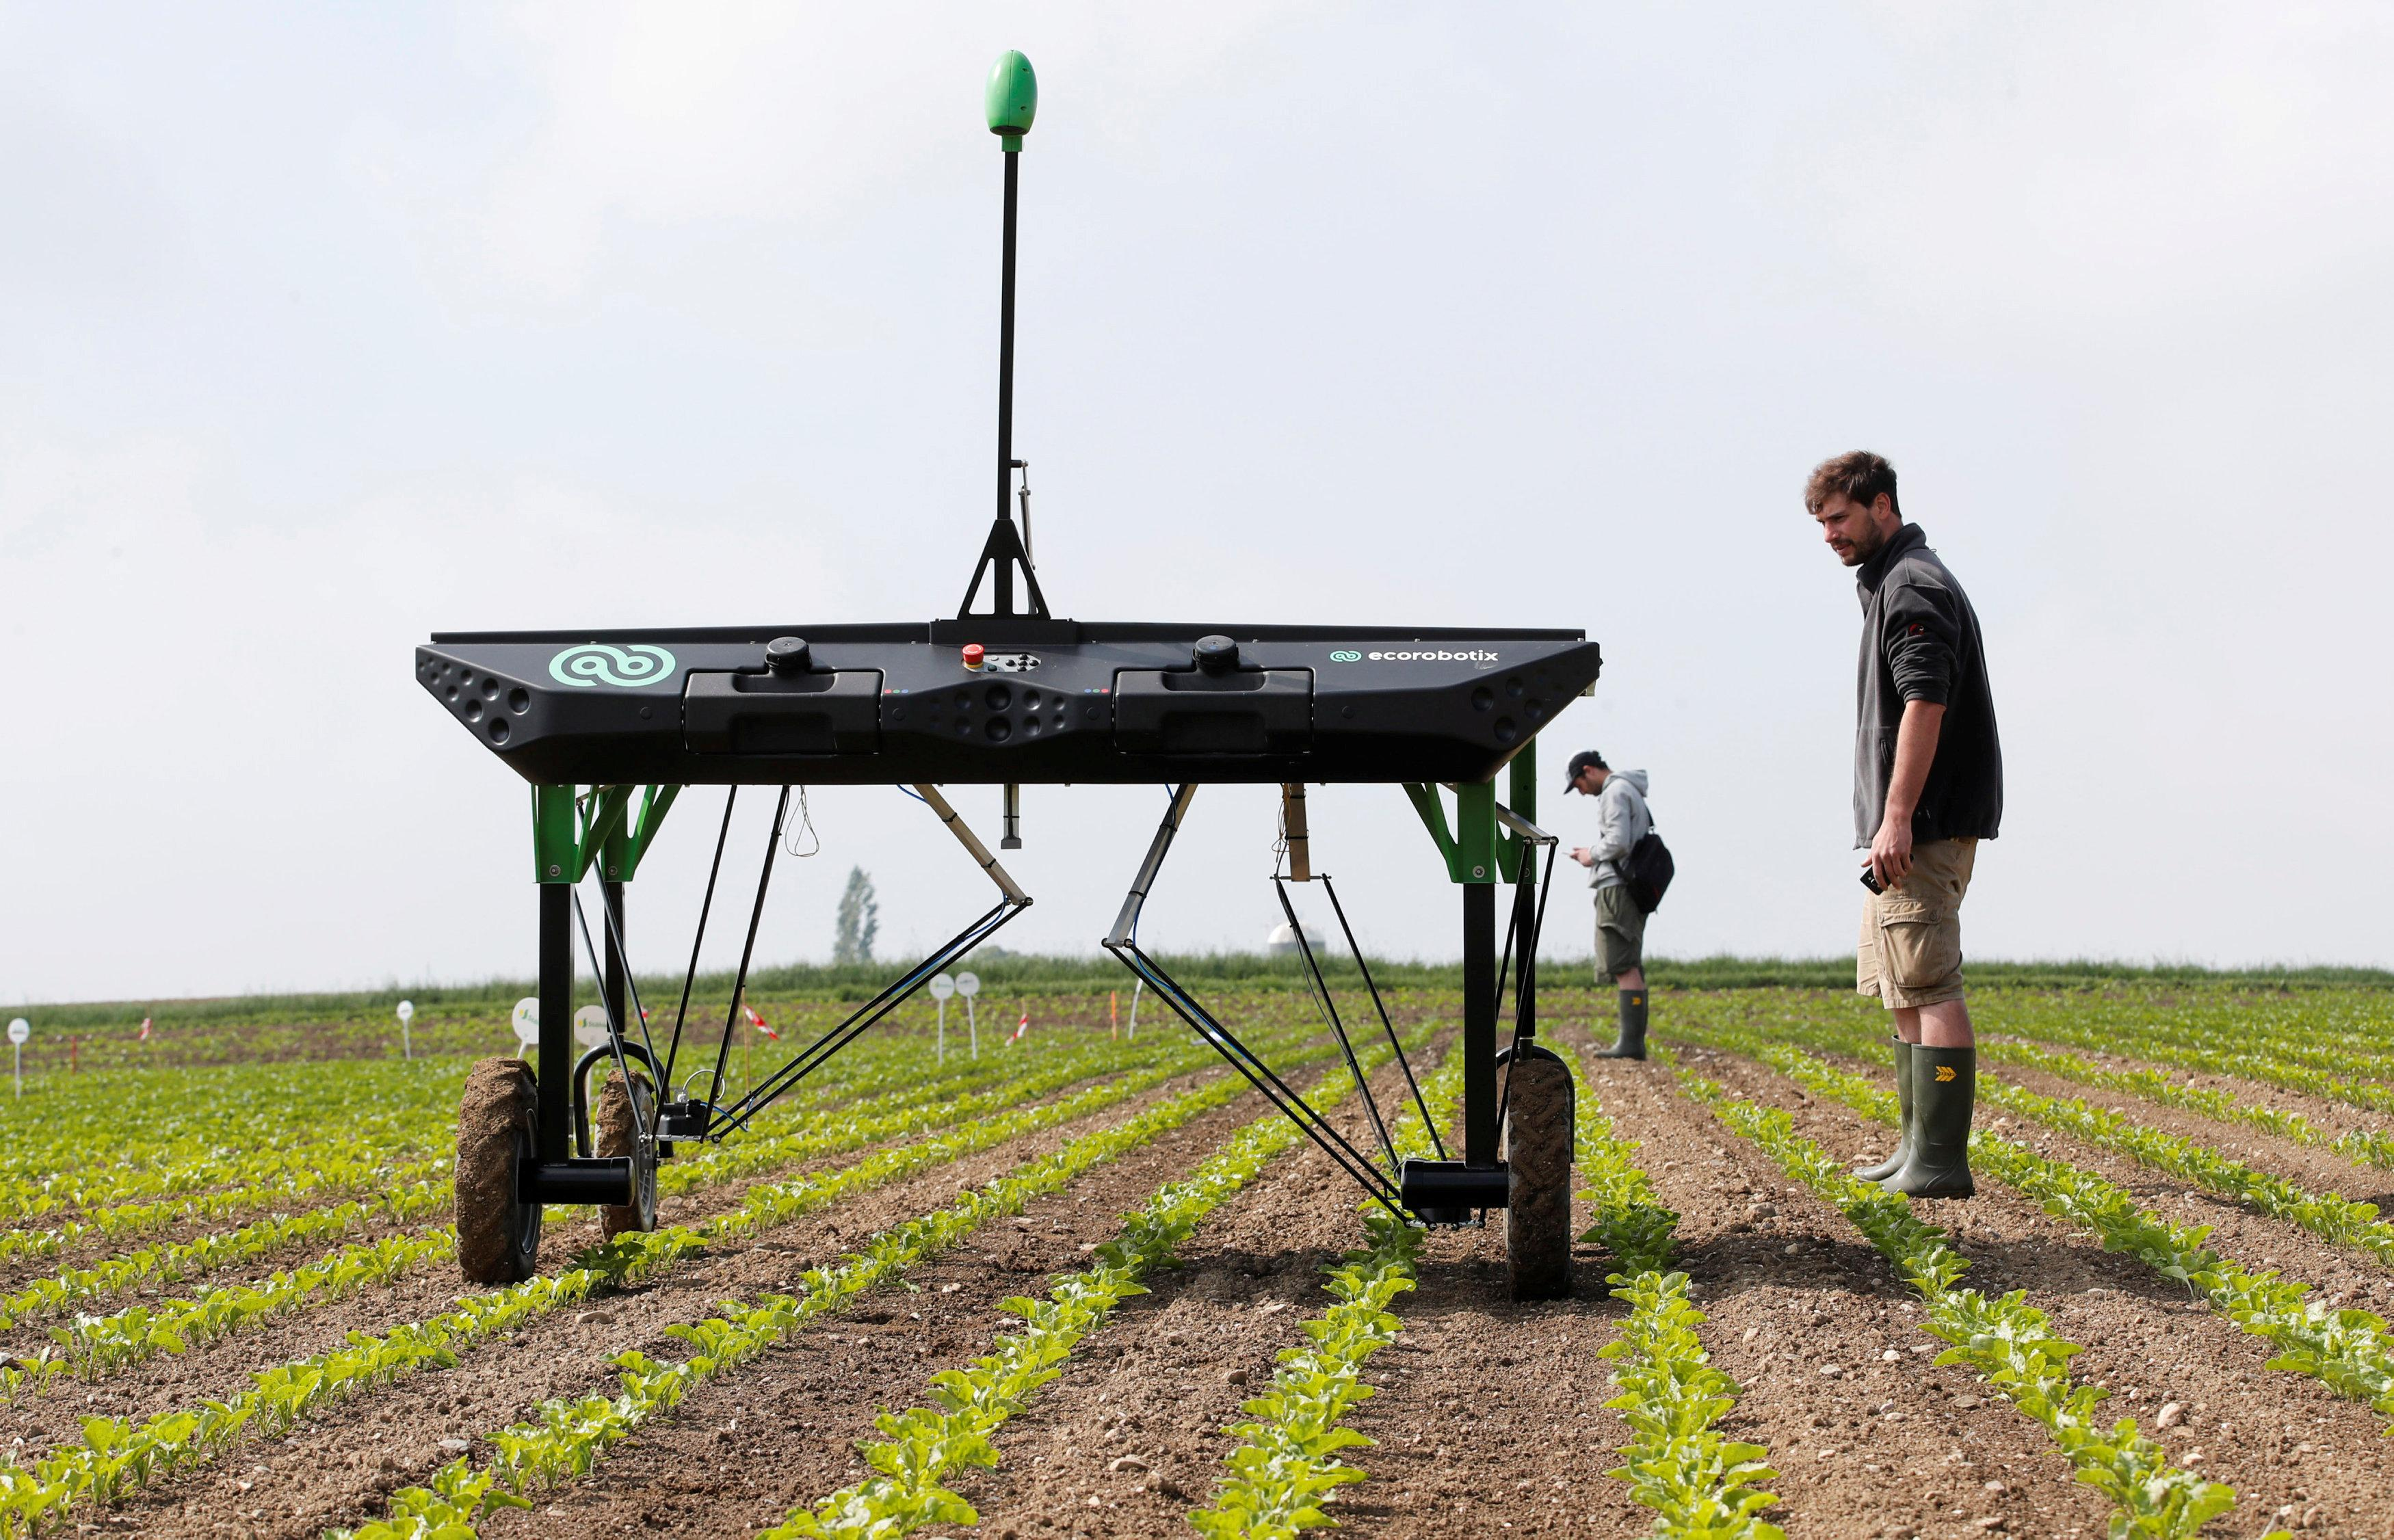 The prototype of an autonomous weeding machine by Swiss start-up ecoRobotix is pictured during tests on a sugar beet field near Bavois, Switzerland May 18, 2018. Denis Balibouse